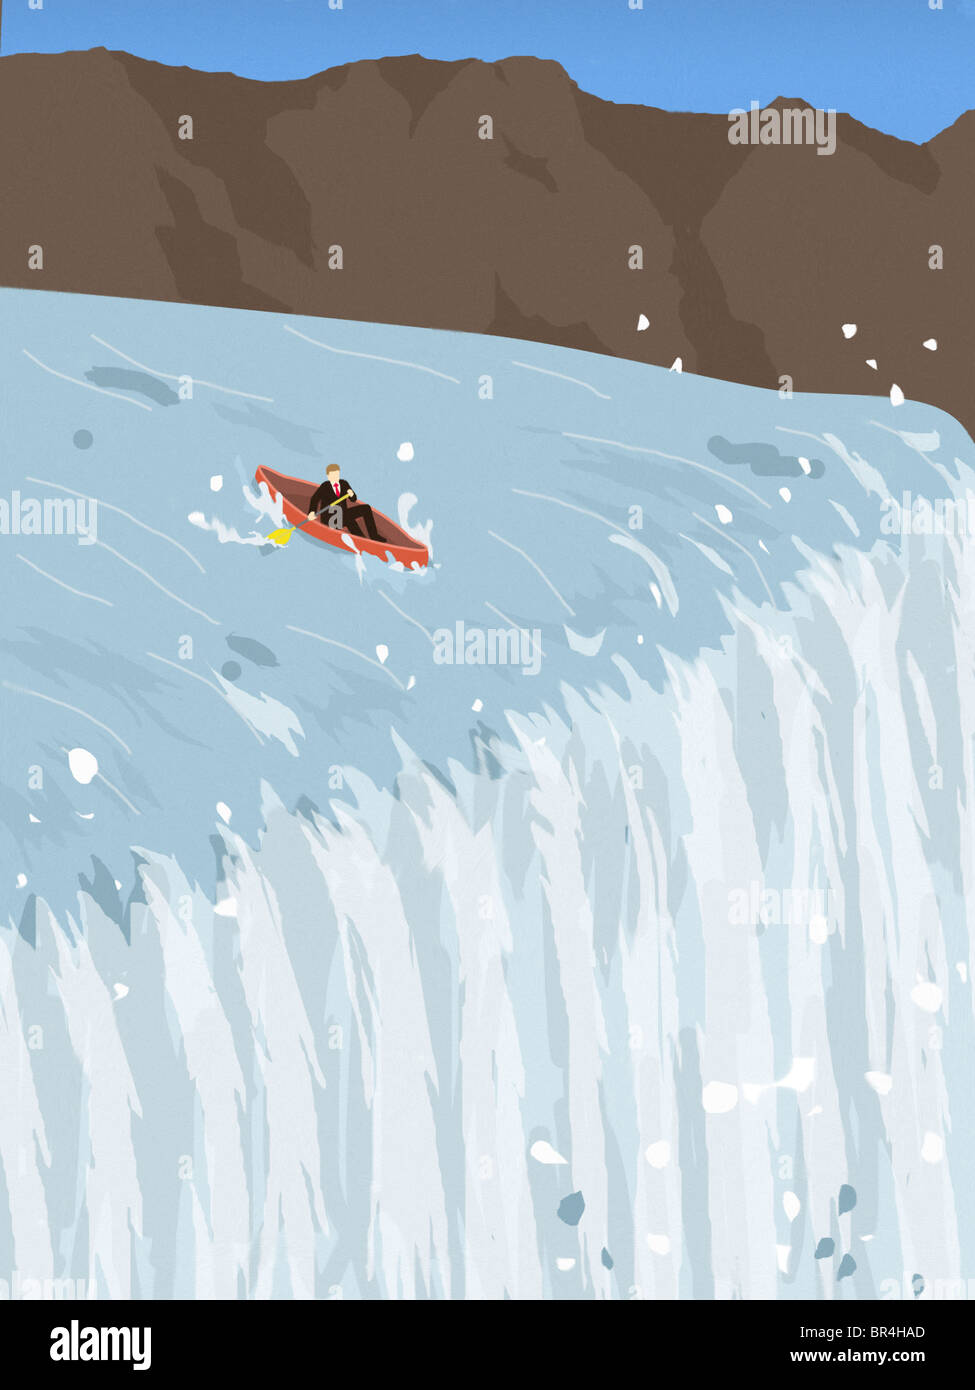 A Businessman In A Canoe Trying To Avoid Going Over A